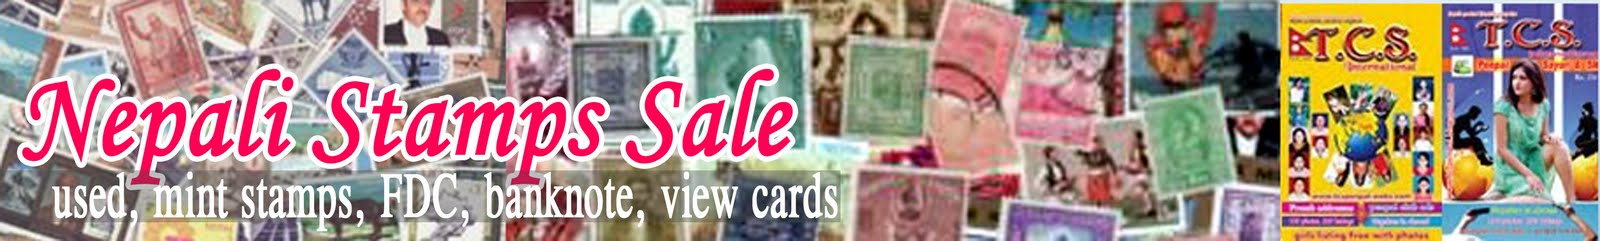 Nepali used, mint stamps, FDC's, Philatelic Items, Nepali banknote, view cards.